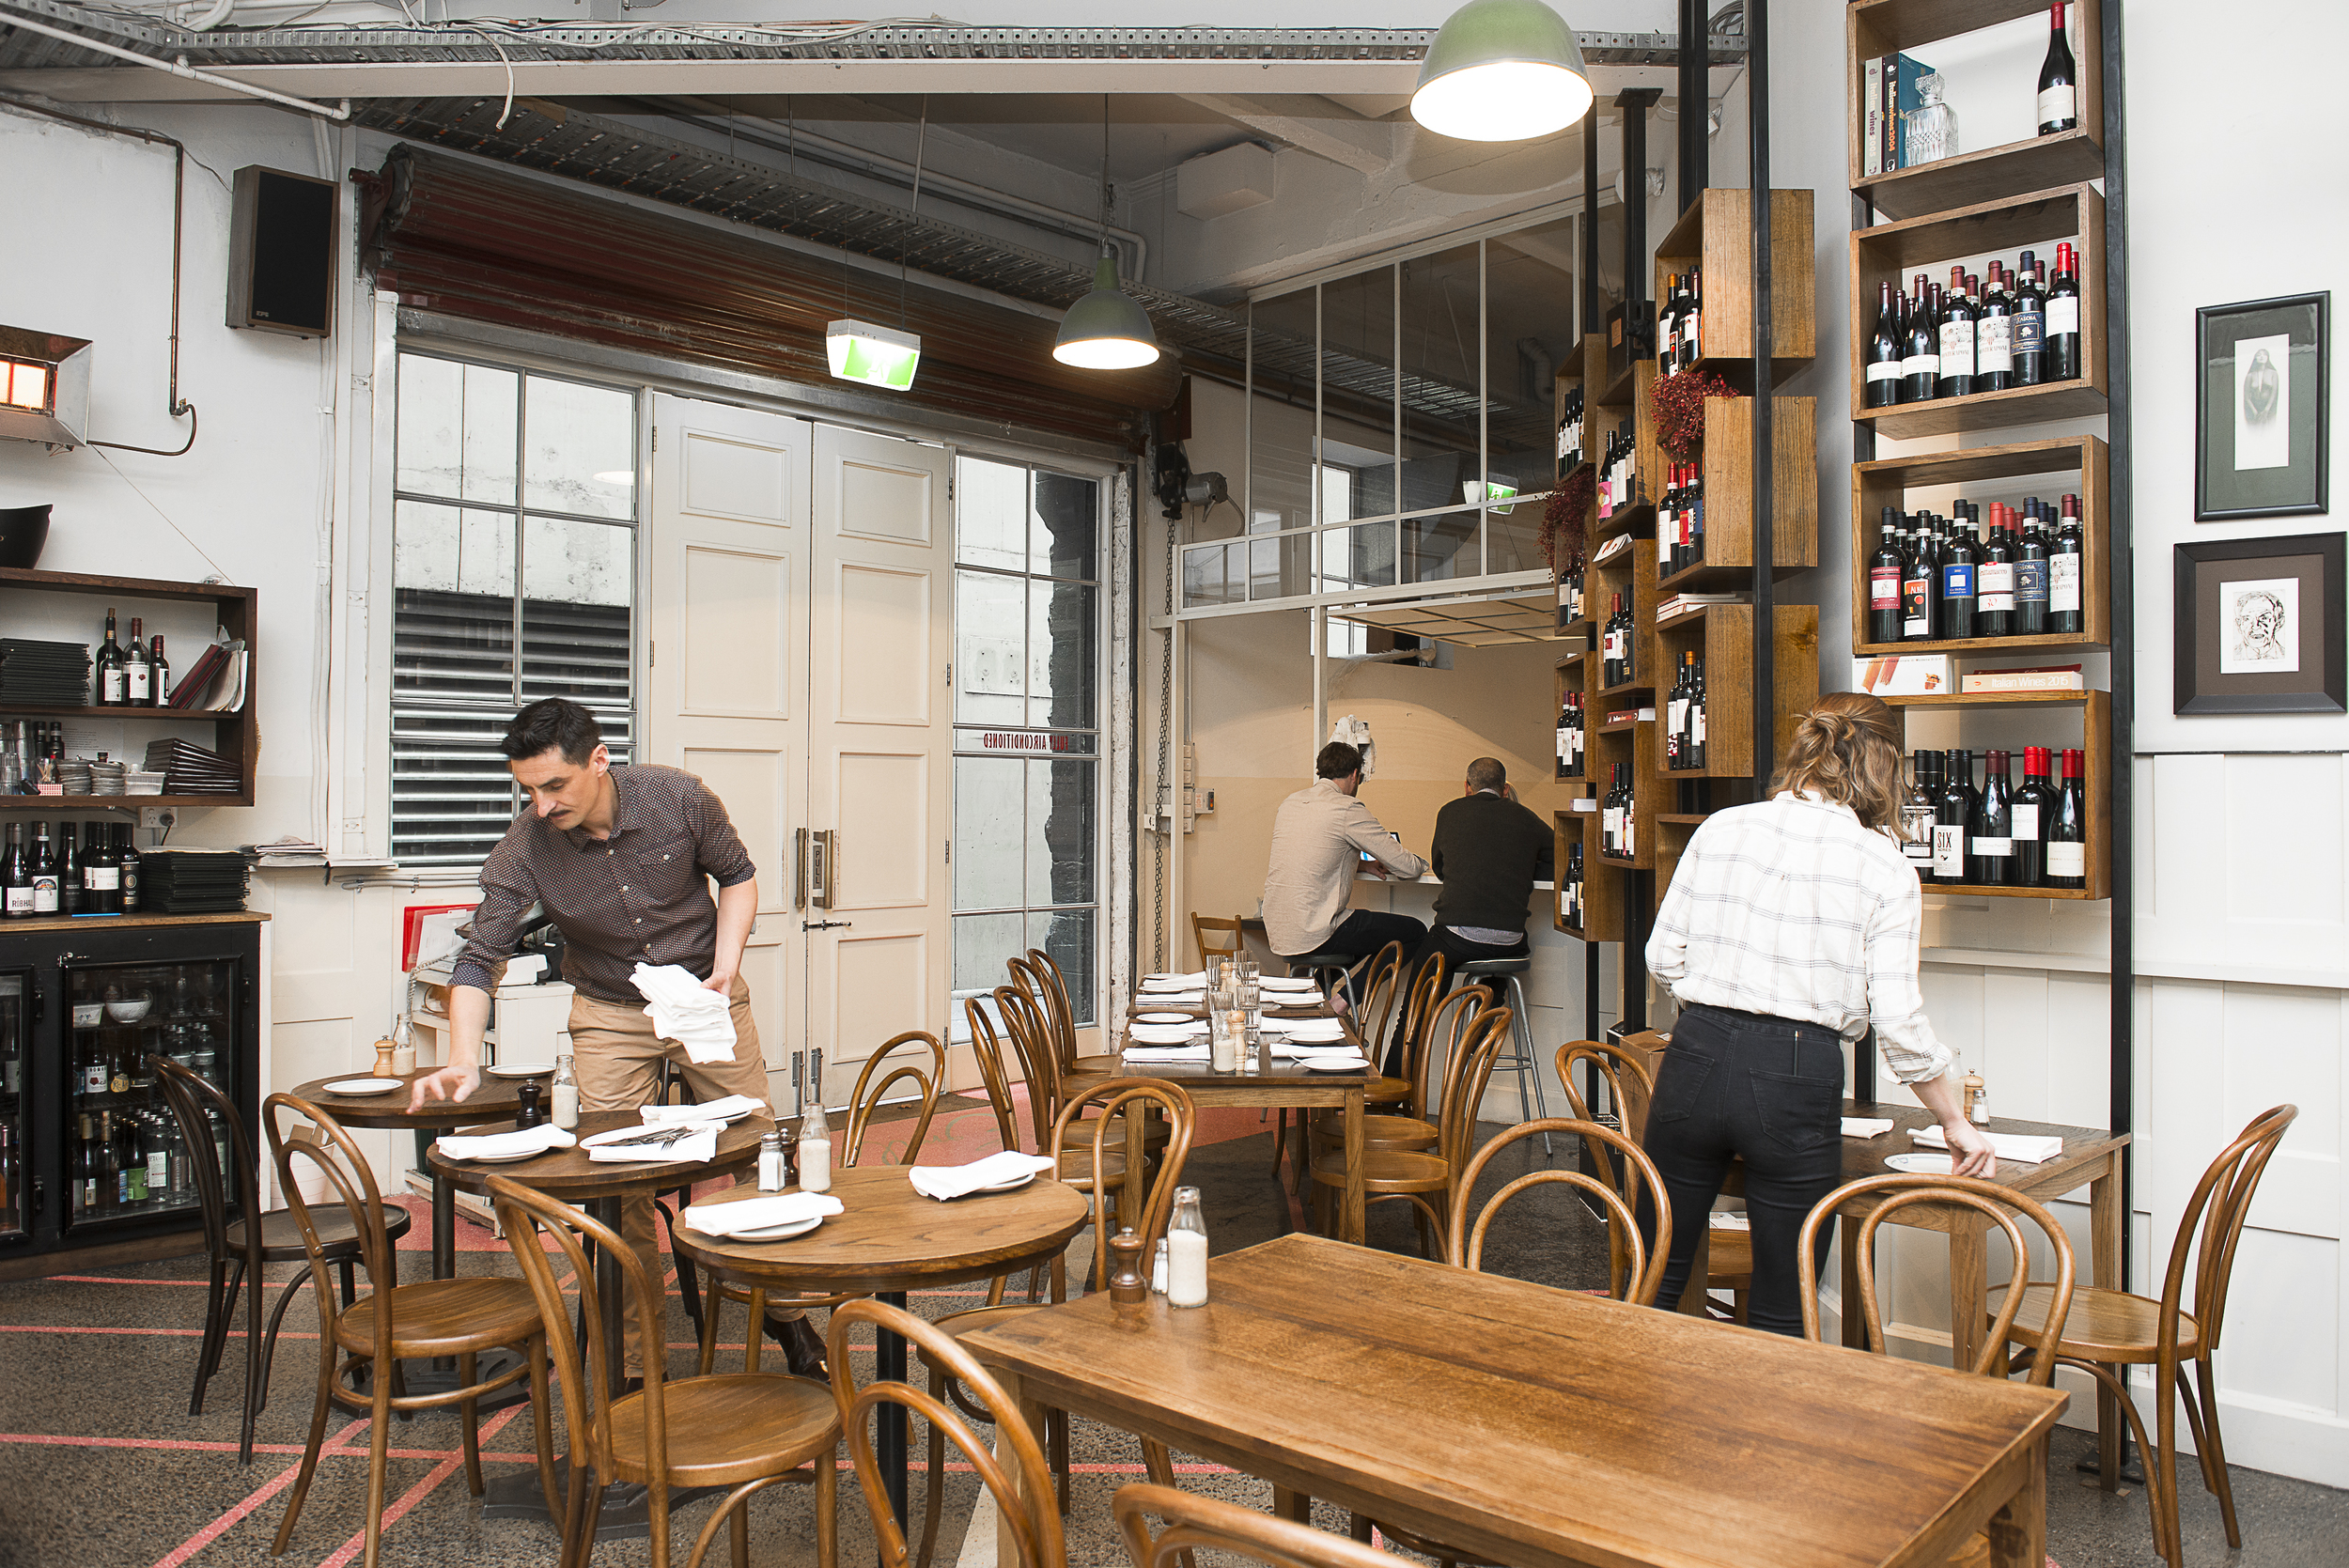 TRATTORIA EMILIA - THE WEEKLY REVIEW (DOMAIN)